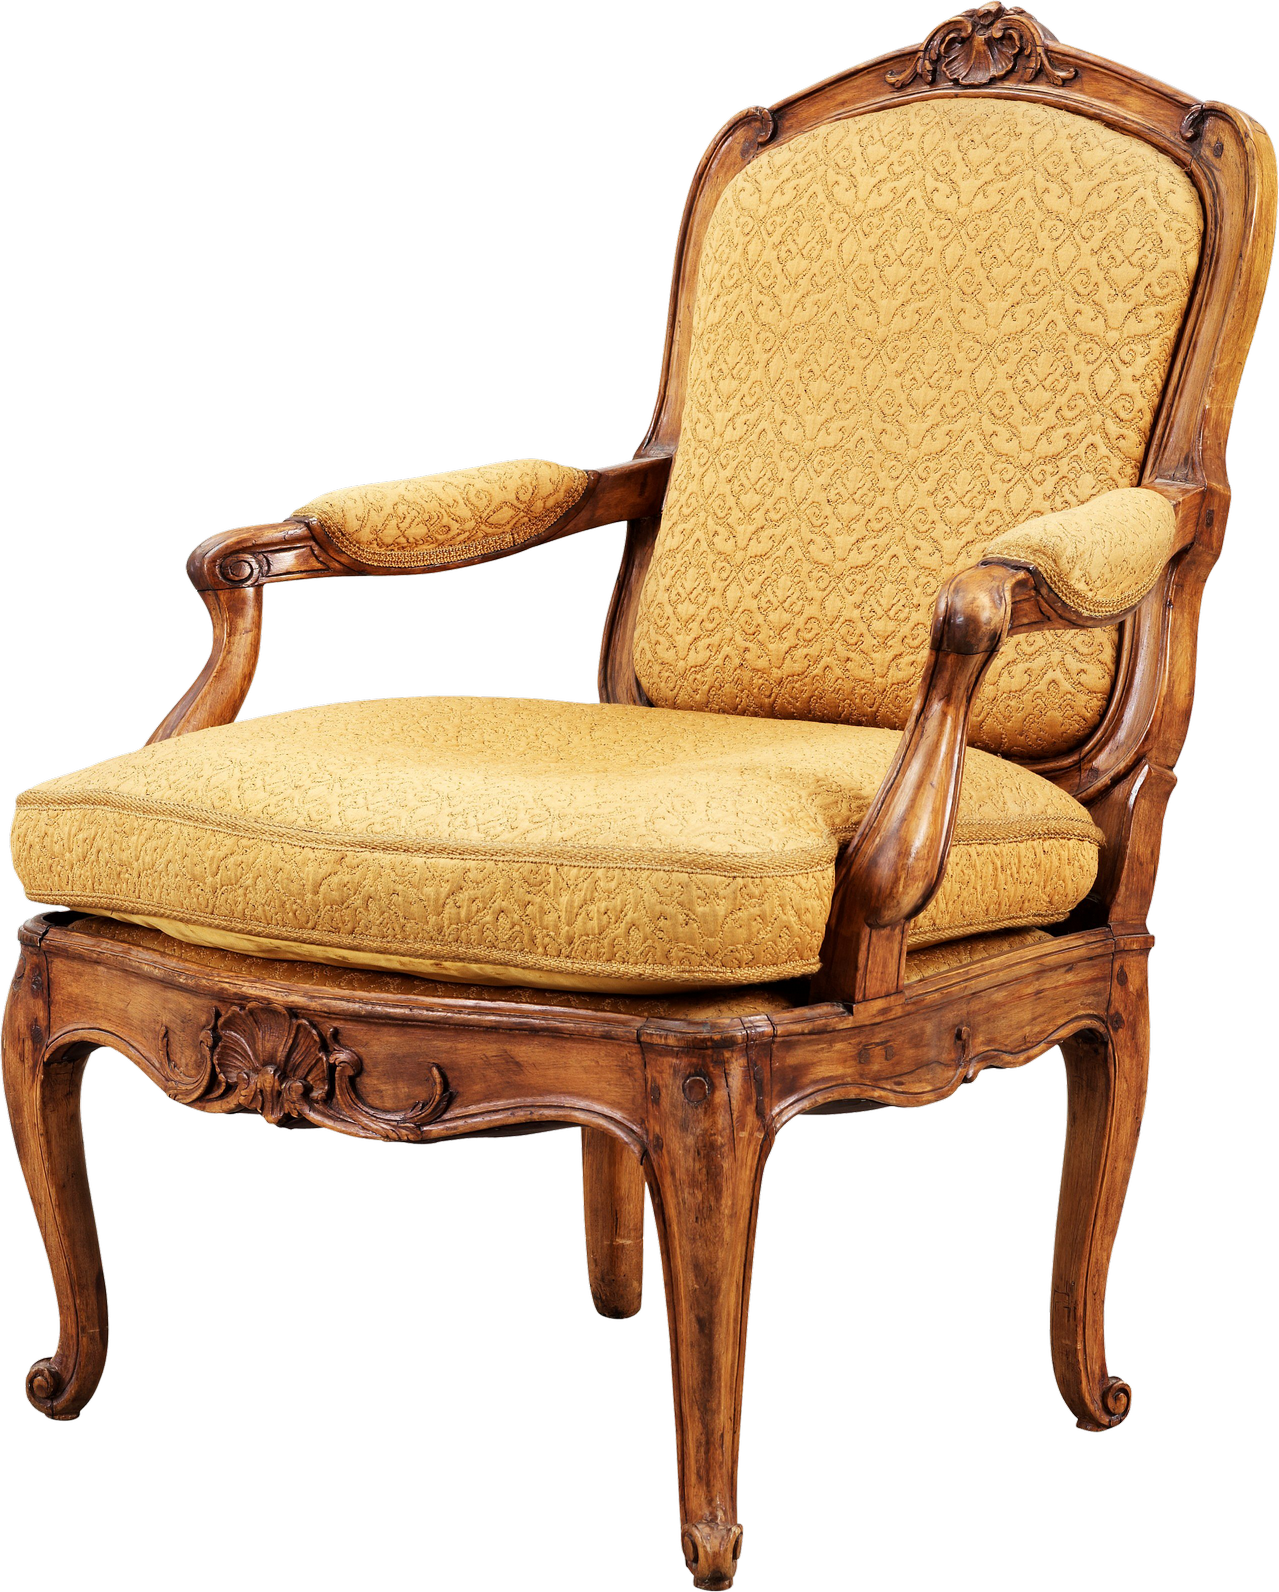 Armchair Png Image Armchair Chair Old Chairs